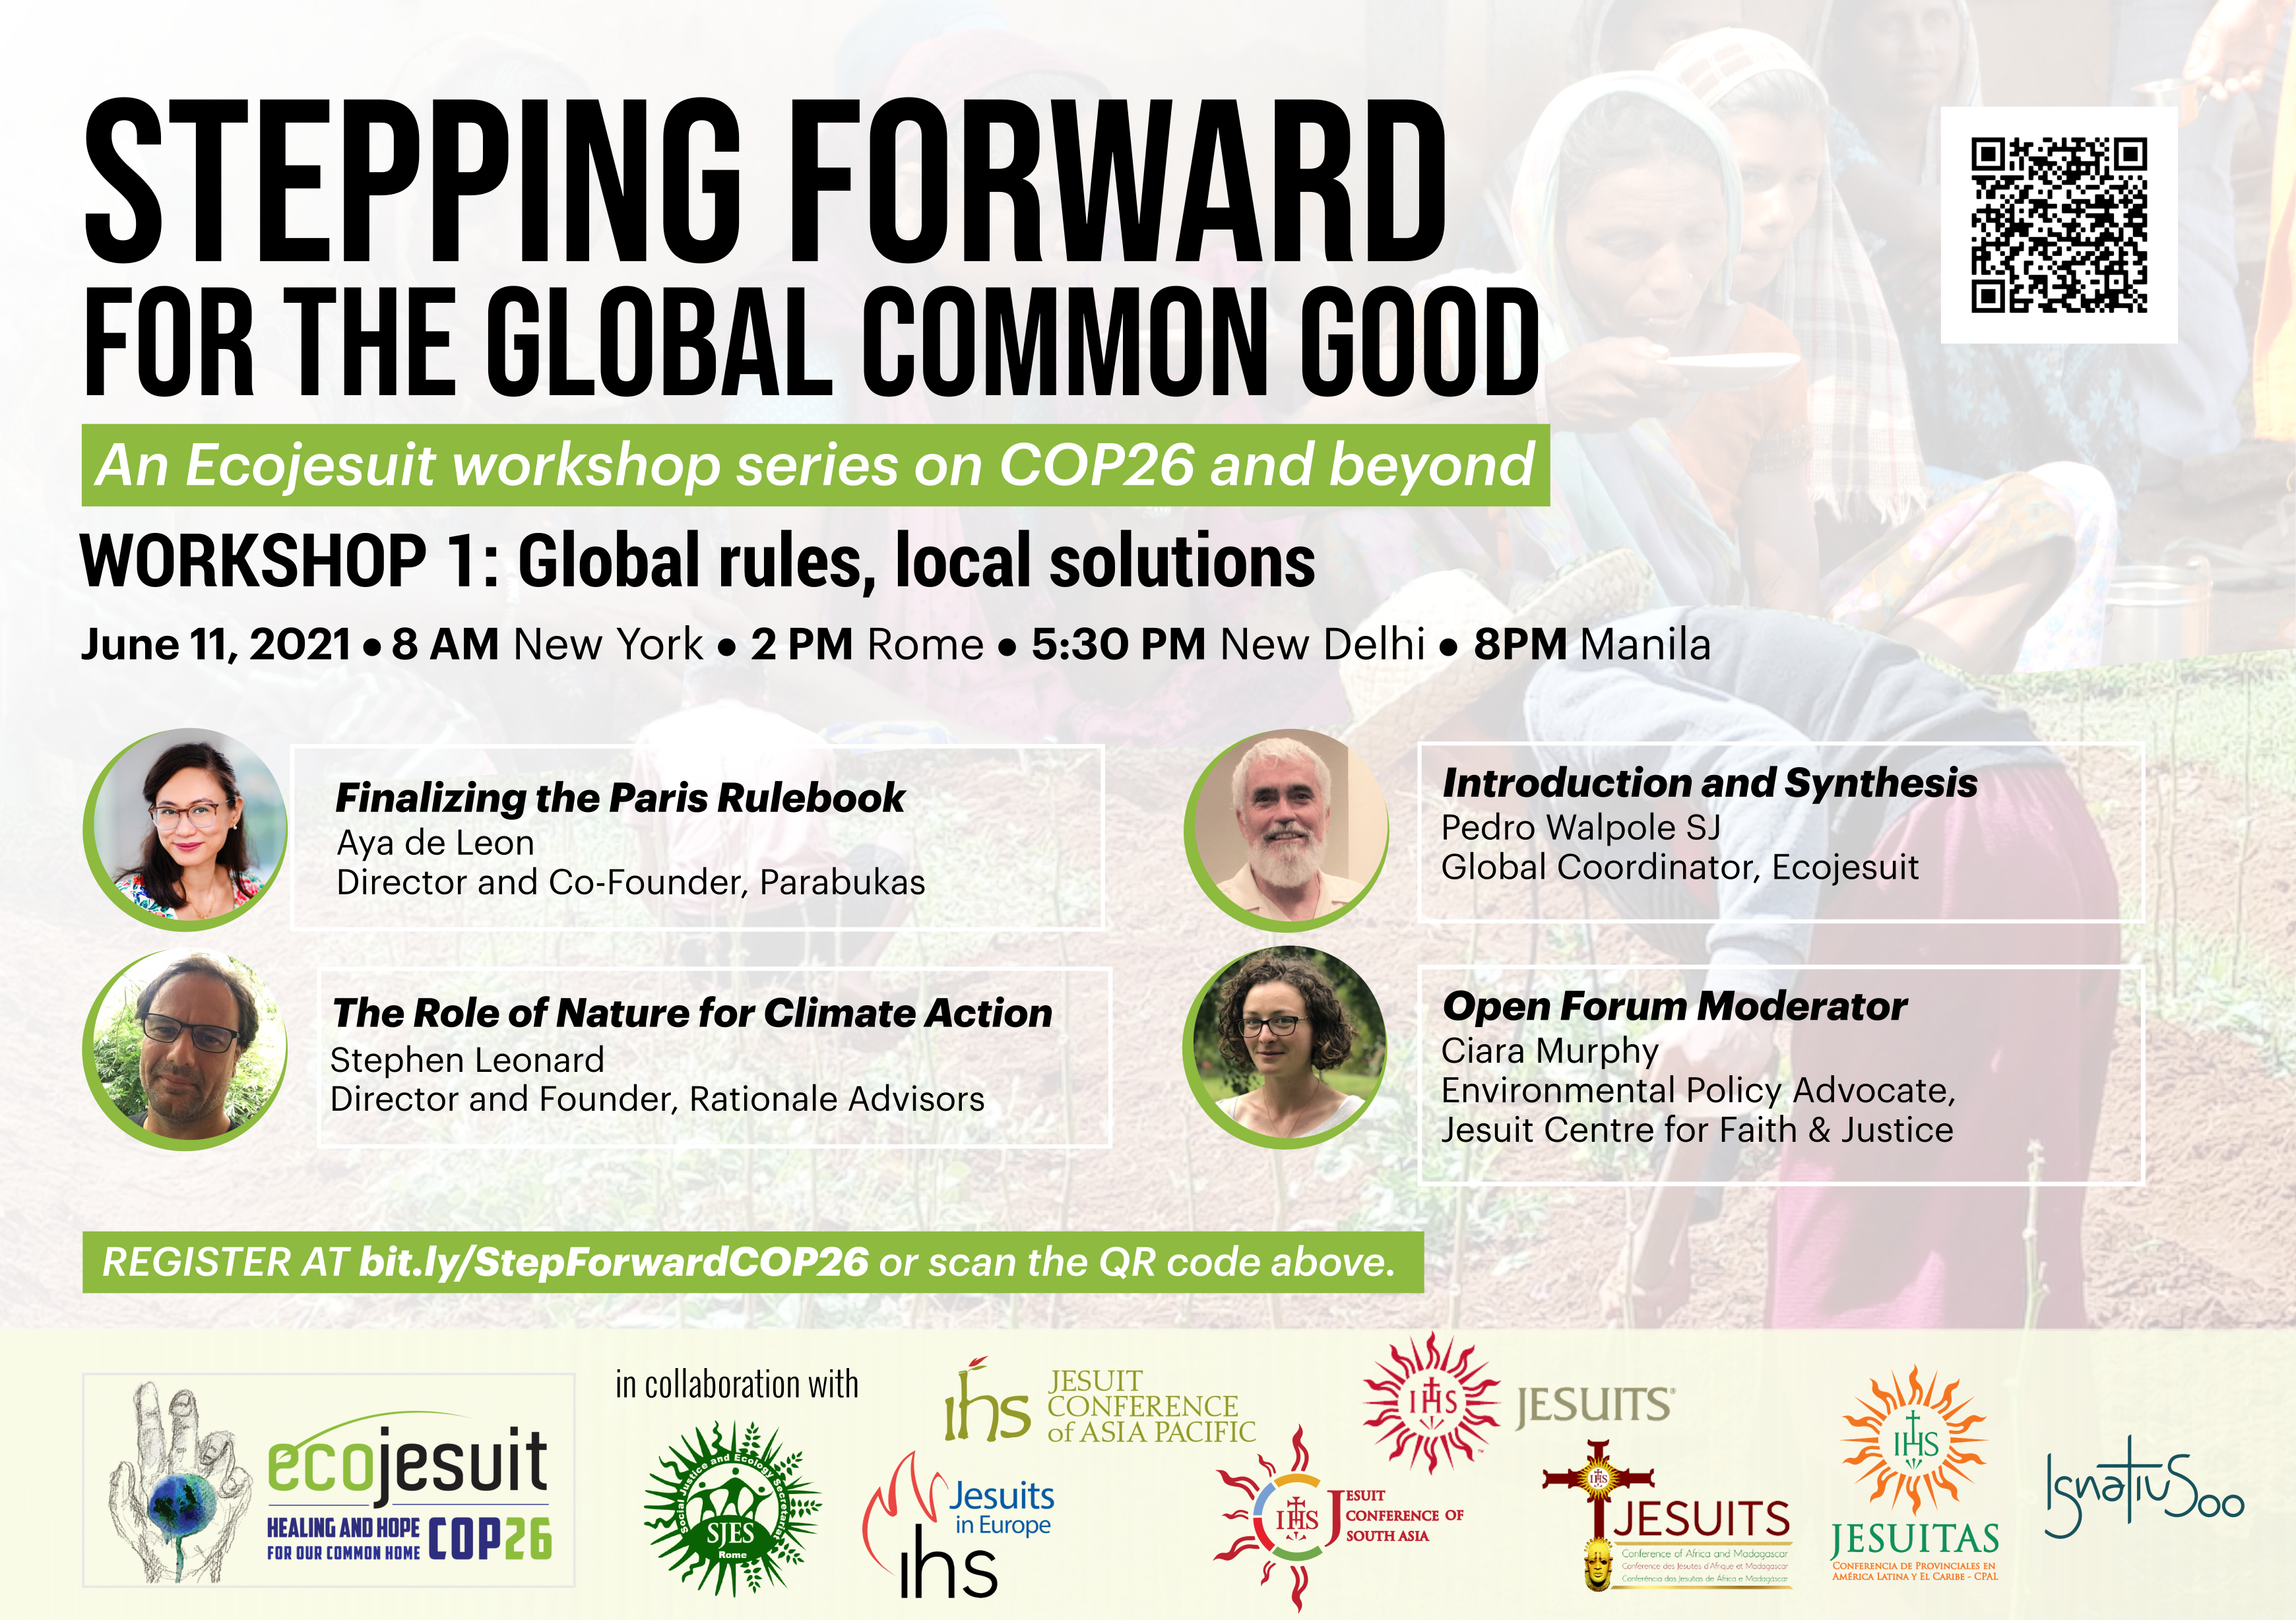 Stepping Forward for the Global Common Good: An Ecojesuit workshop series on COP26 and beyond